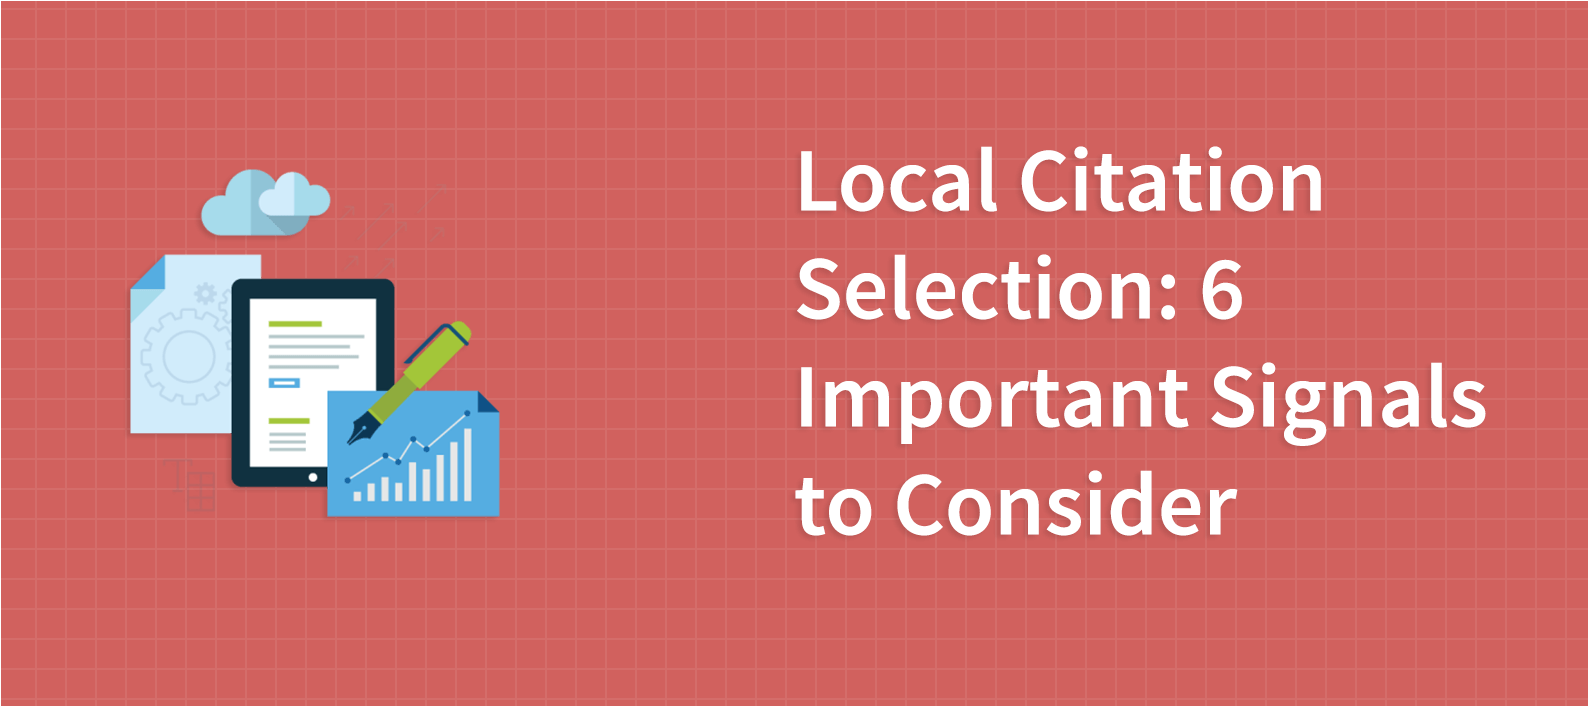 Local Citation Selection: 6 Important Signals to Consider